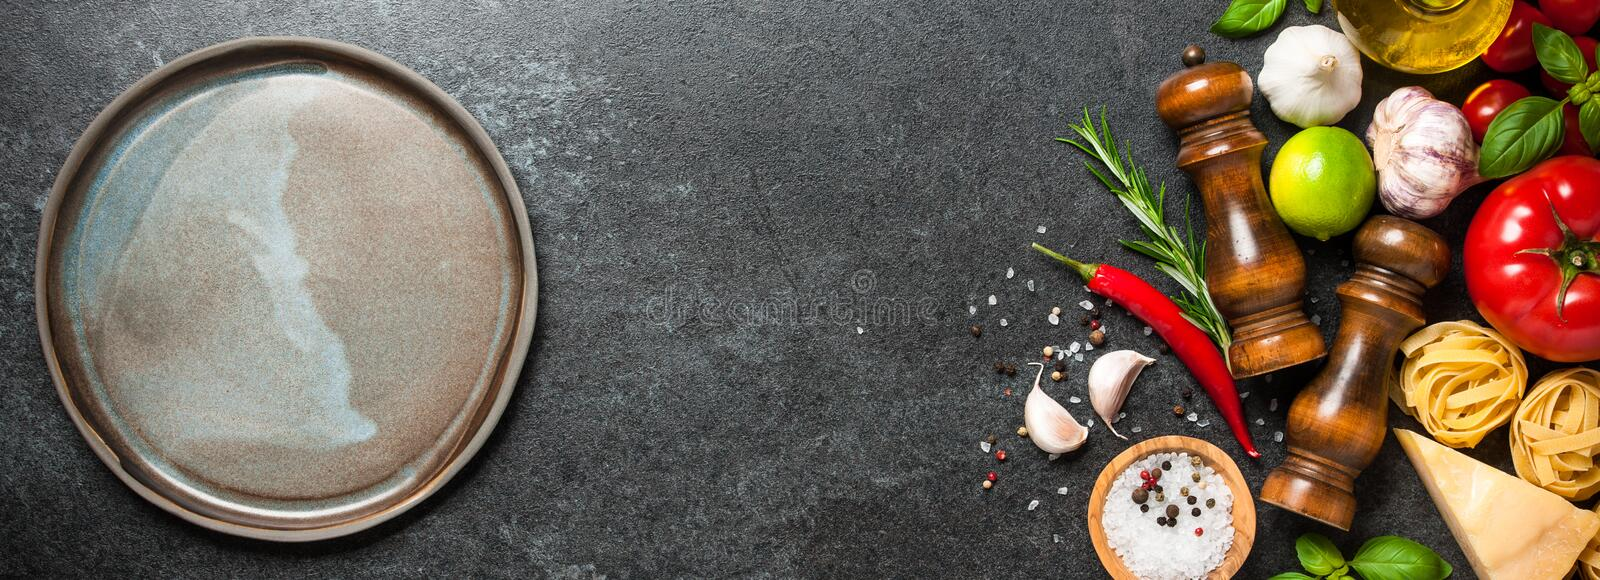 Cooking table with ingredients and empty plate stock photo